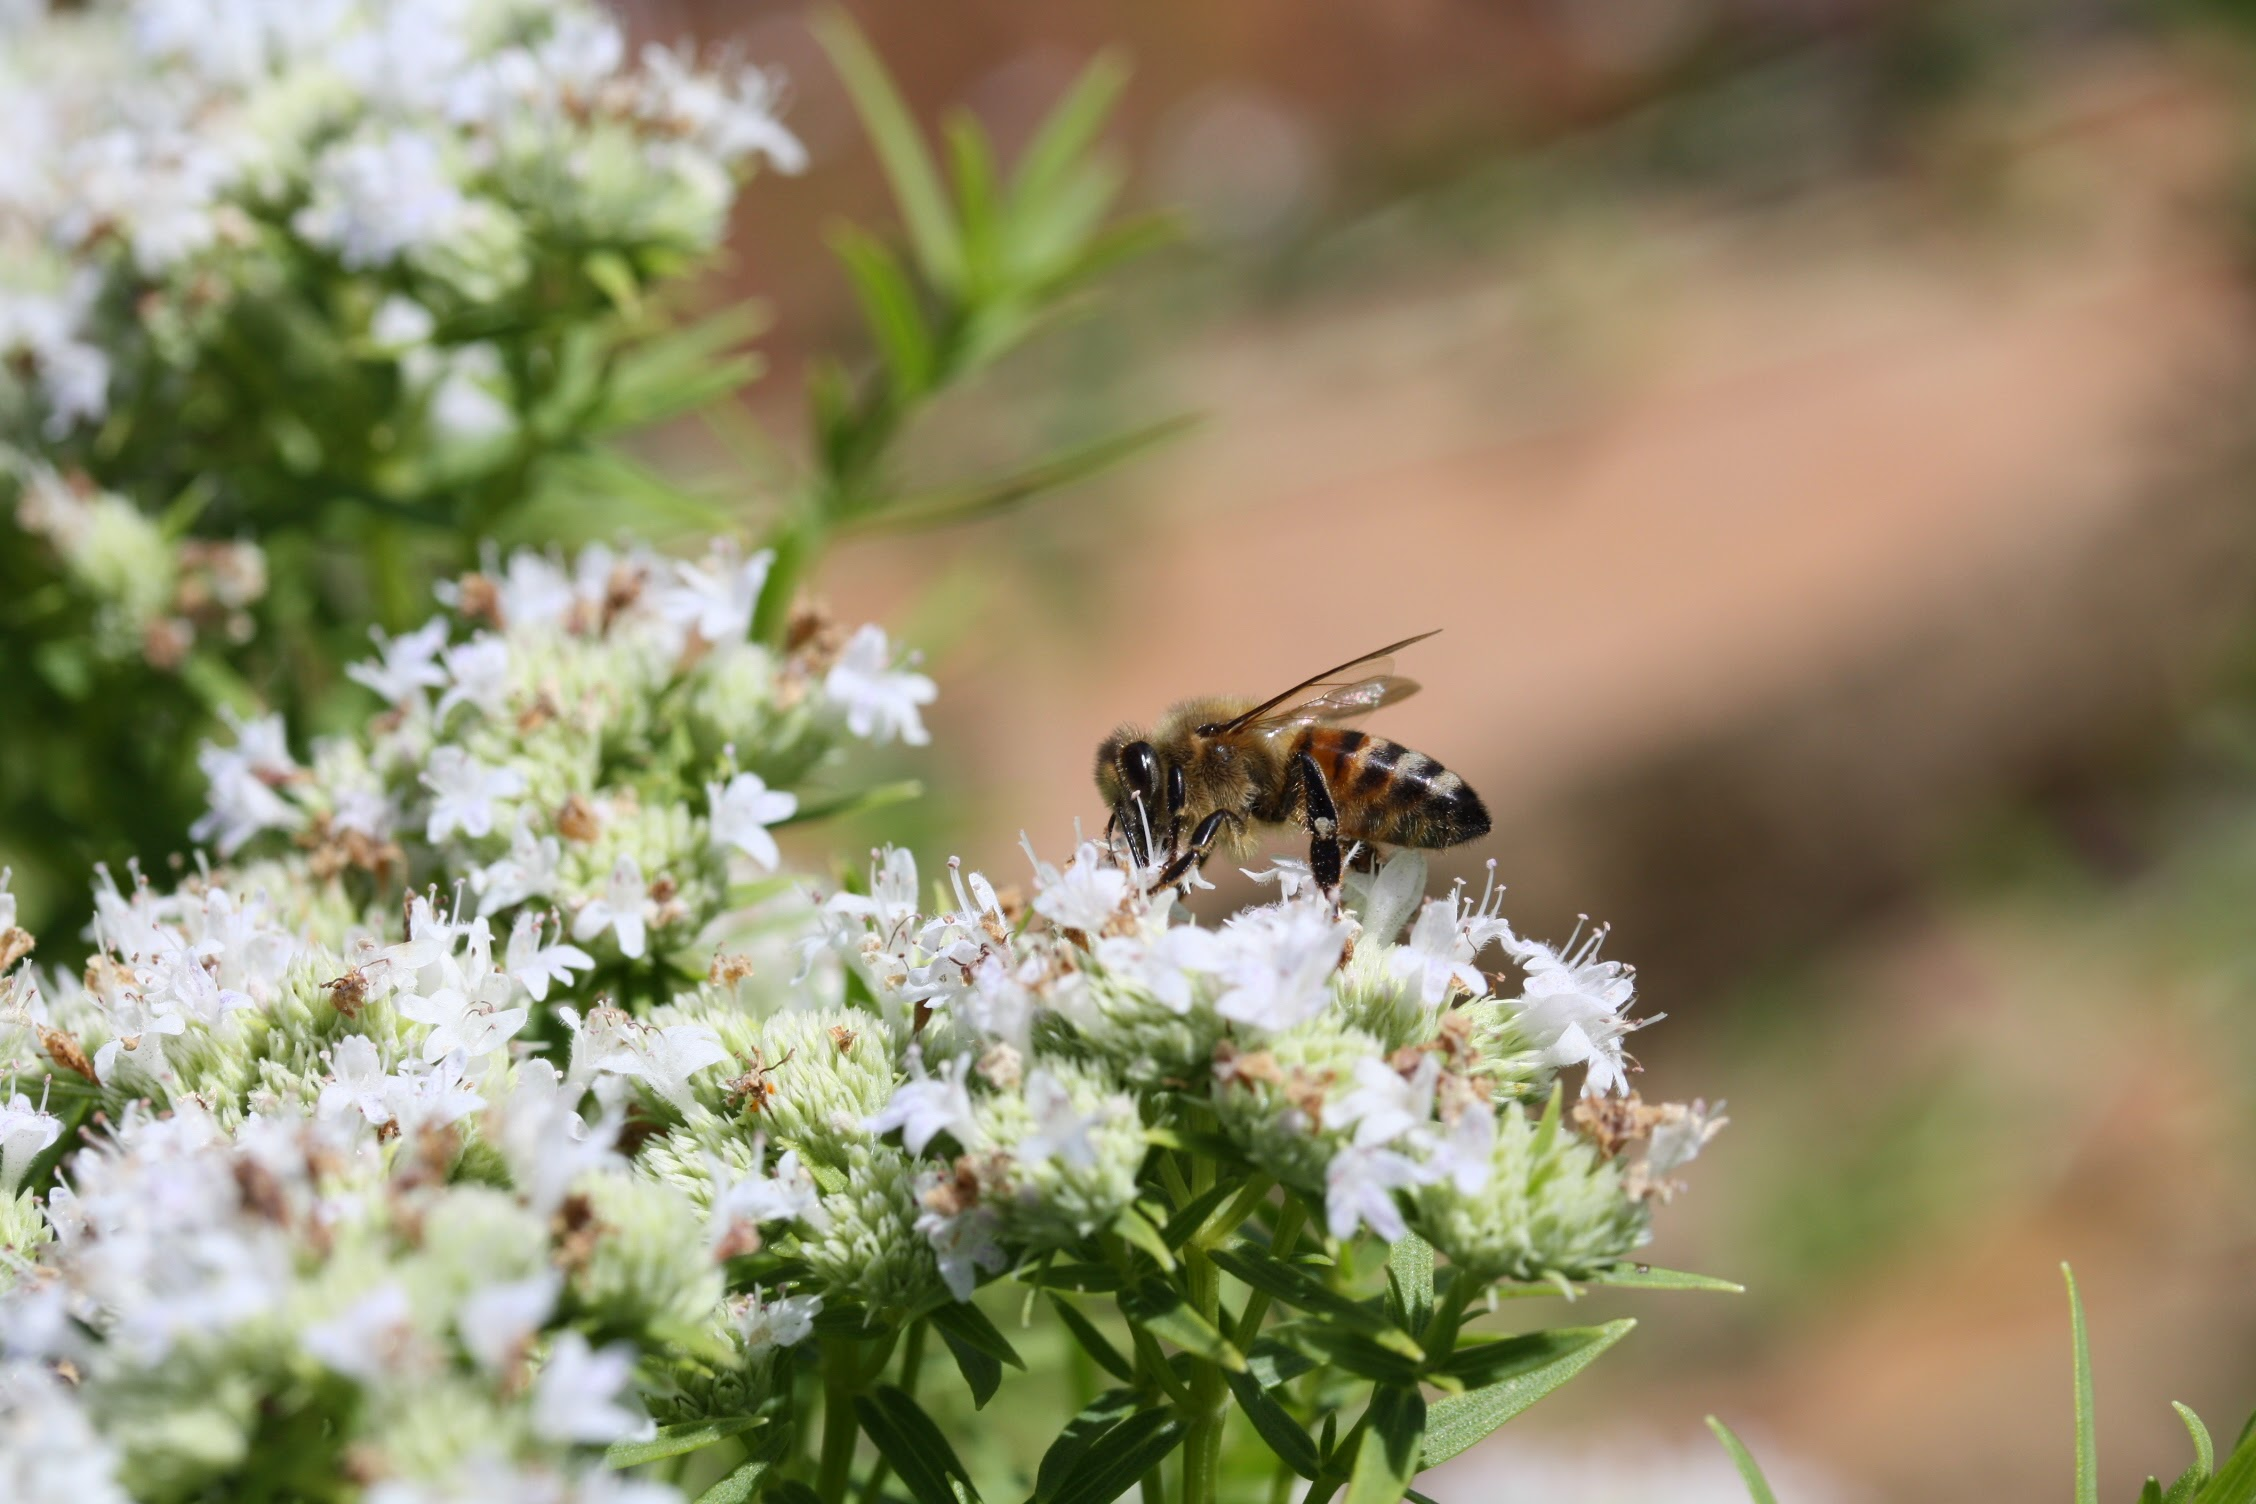 Honeybees are attracted to native plants such as slender mountain mint